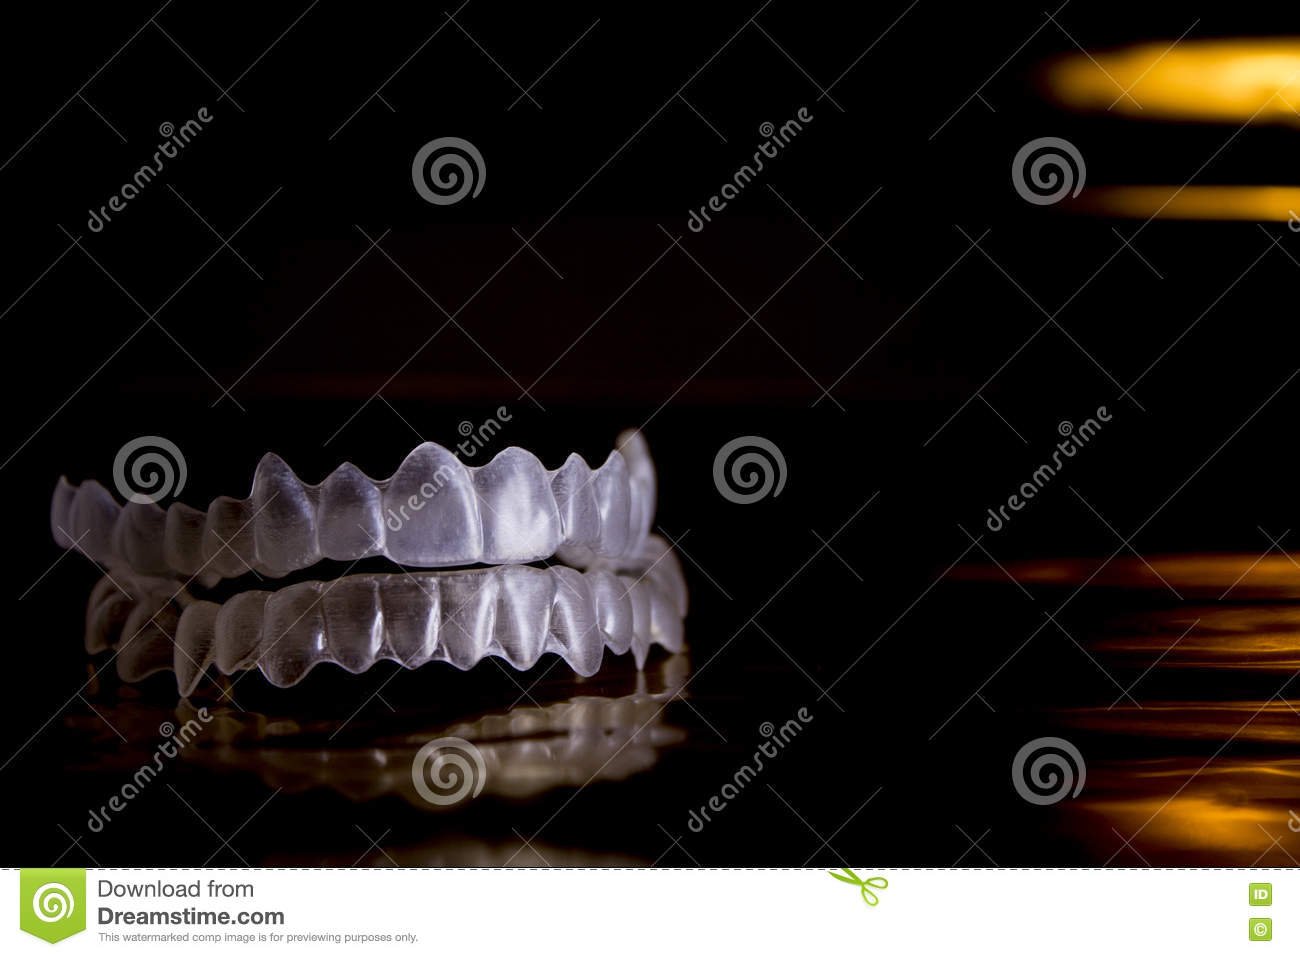 Denture invisible orthodontics